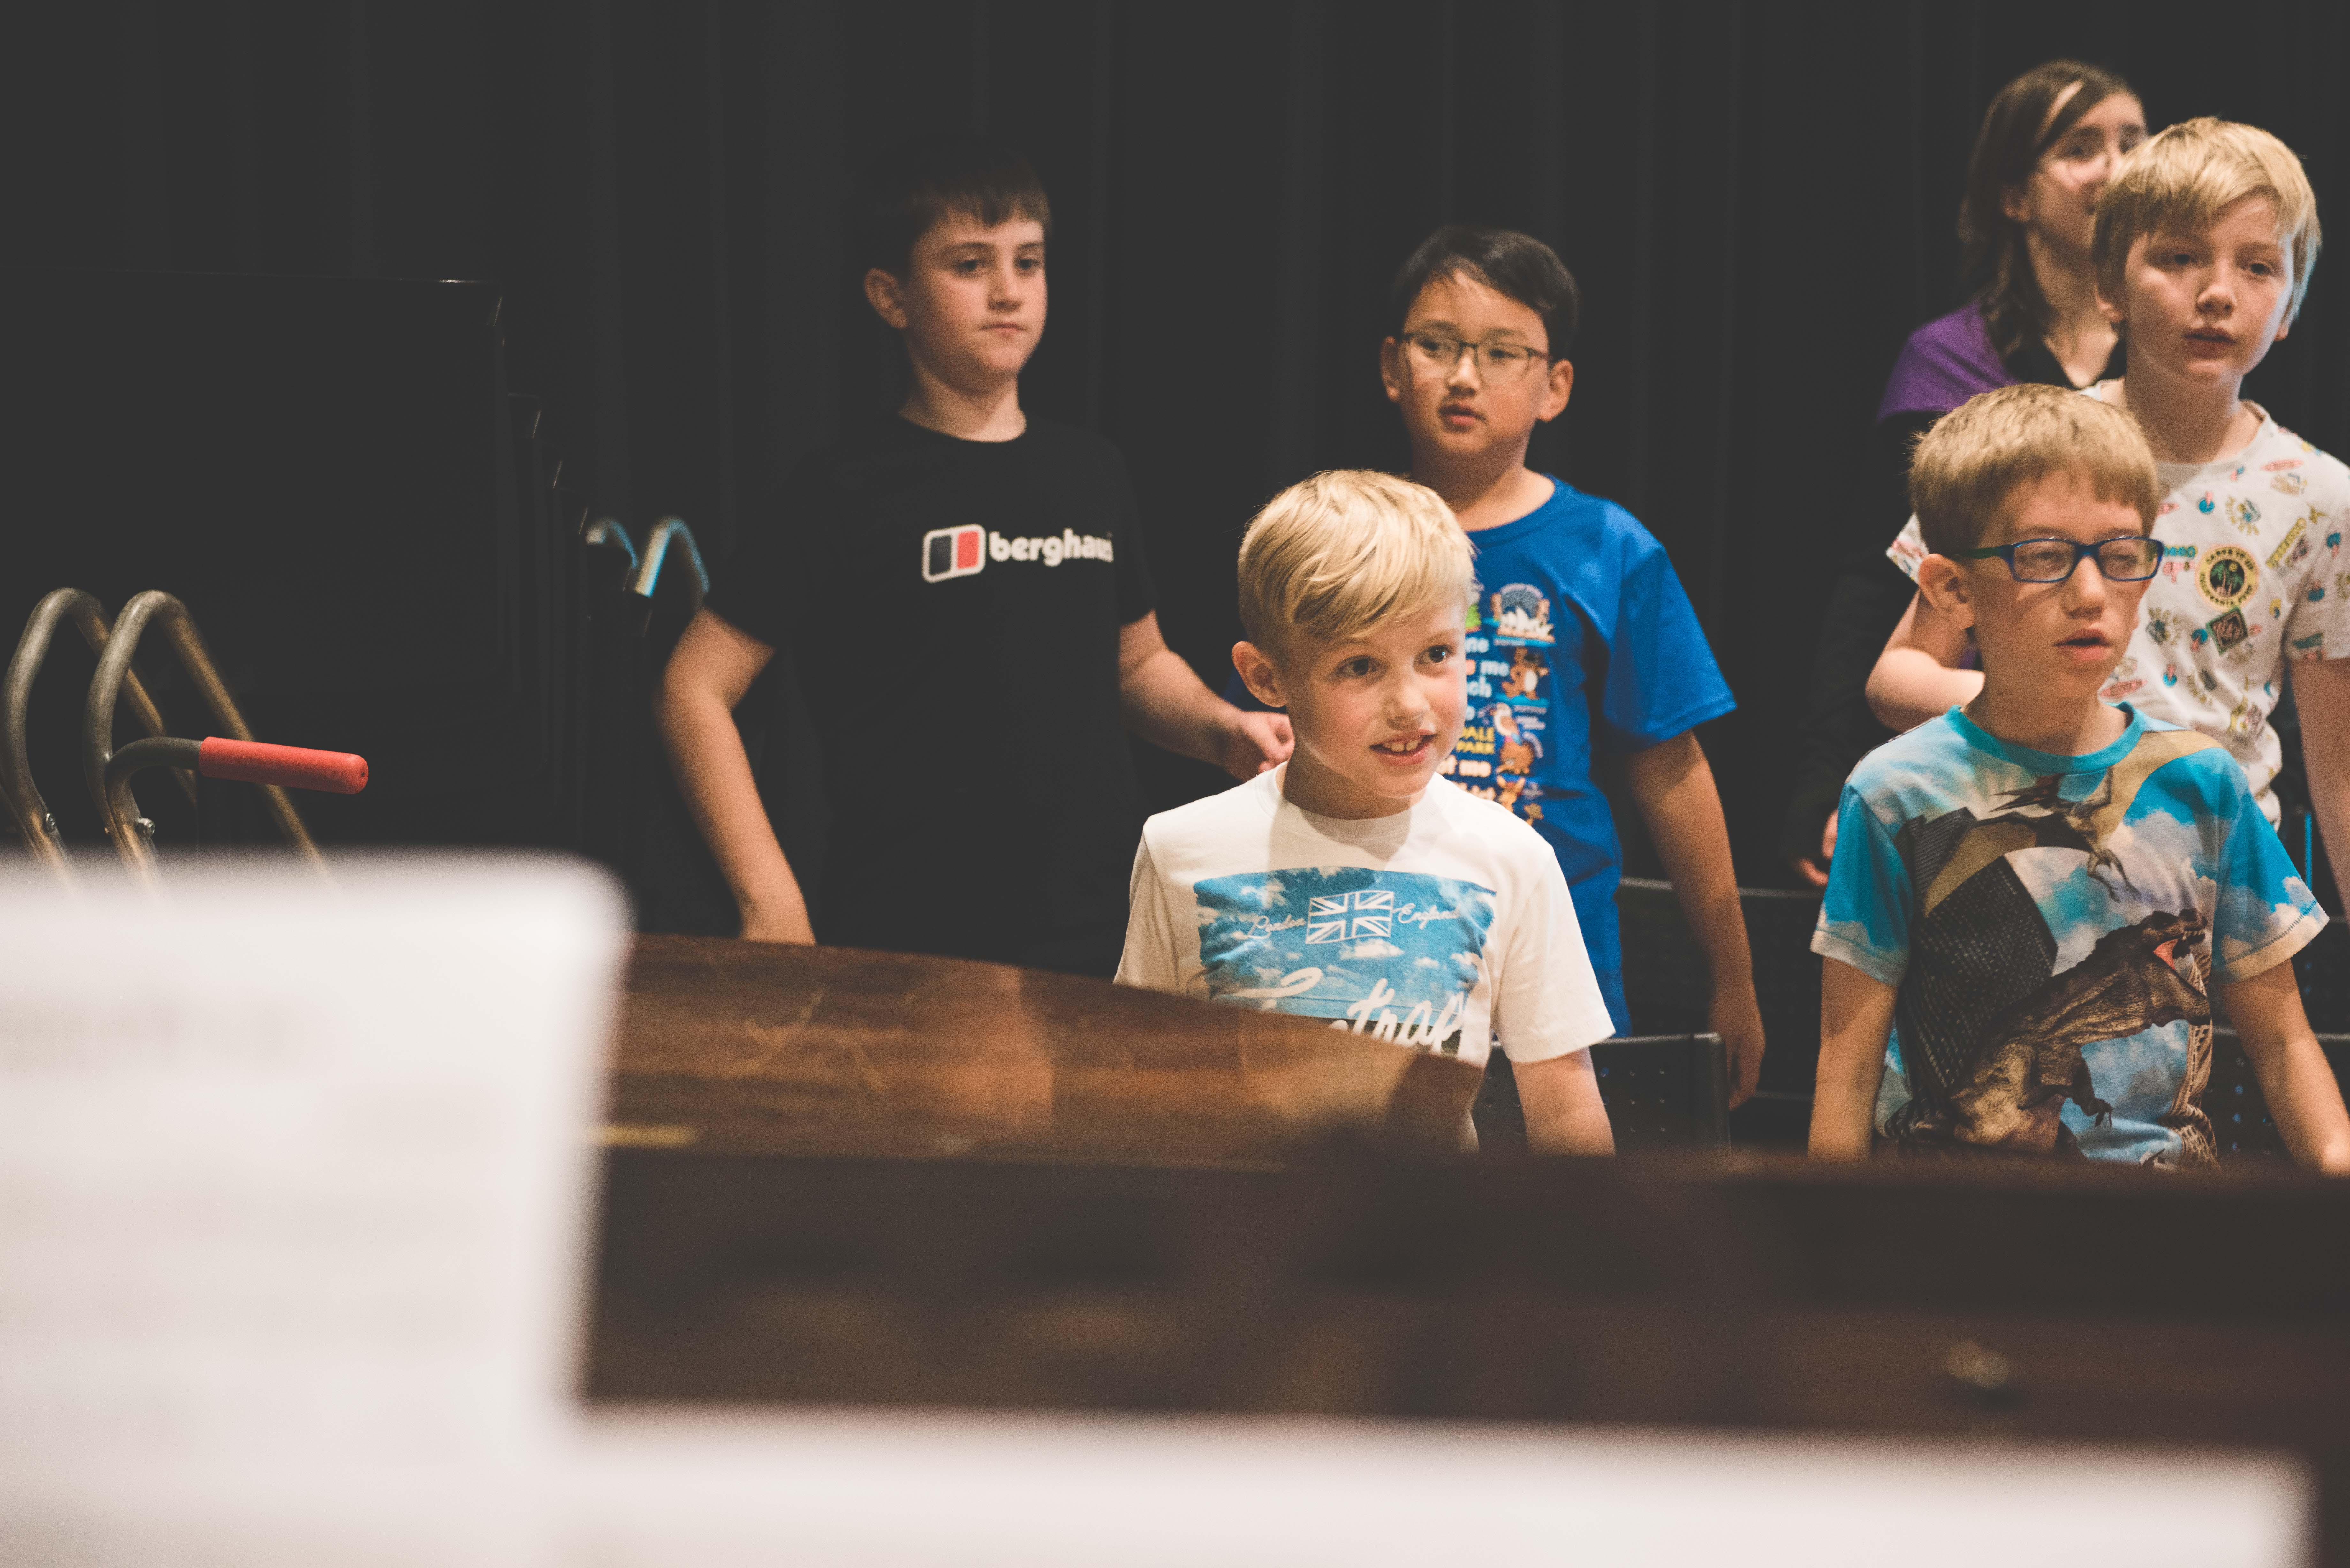 photo of young boy amoing group singing with a smile